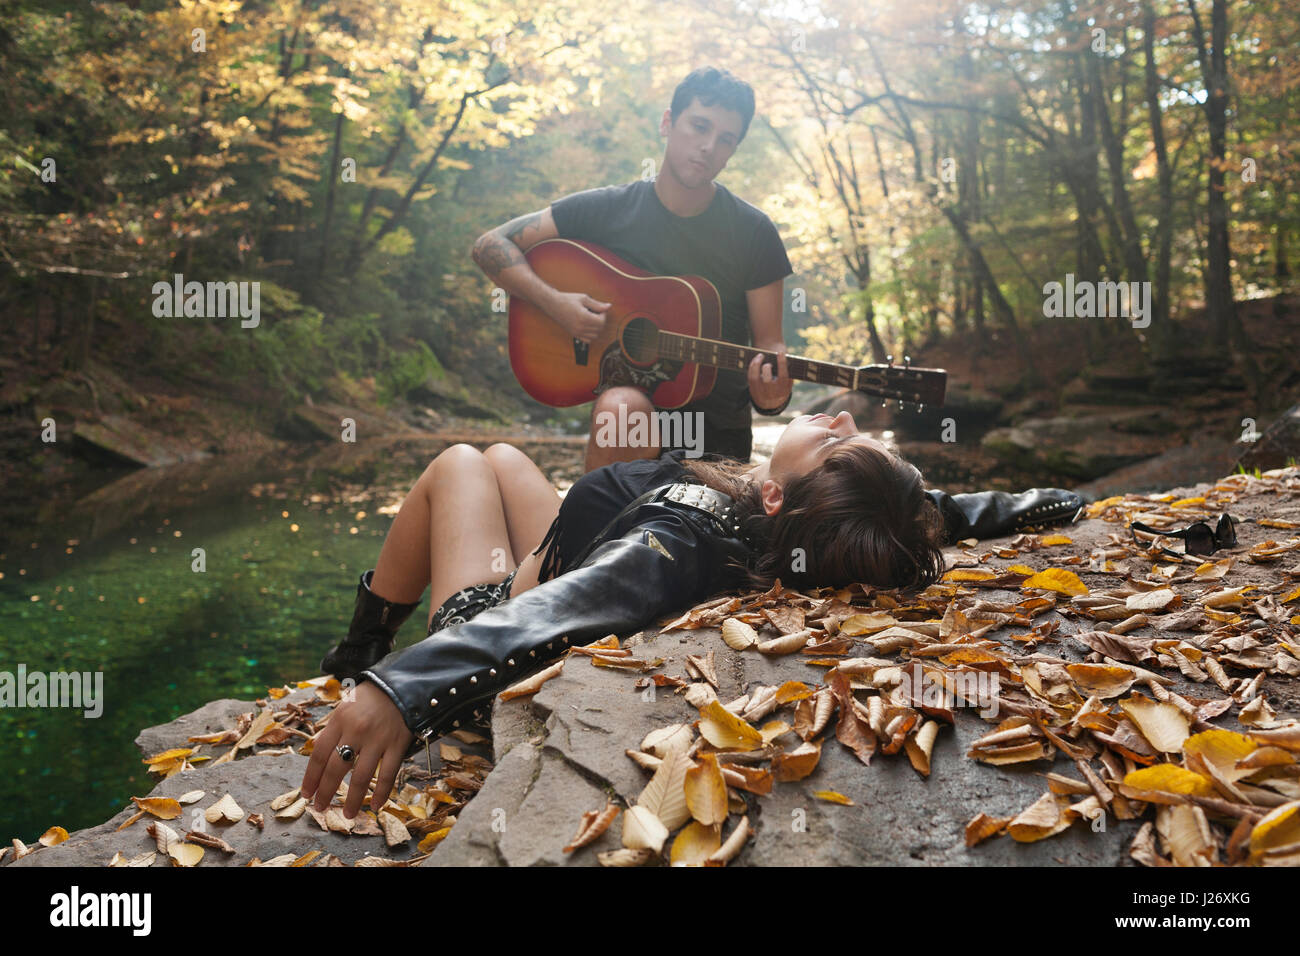 Young man serenading his girlfriend by a stream - Stock Image